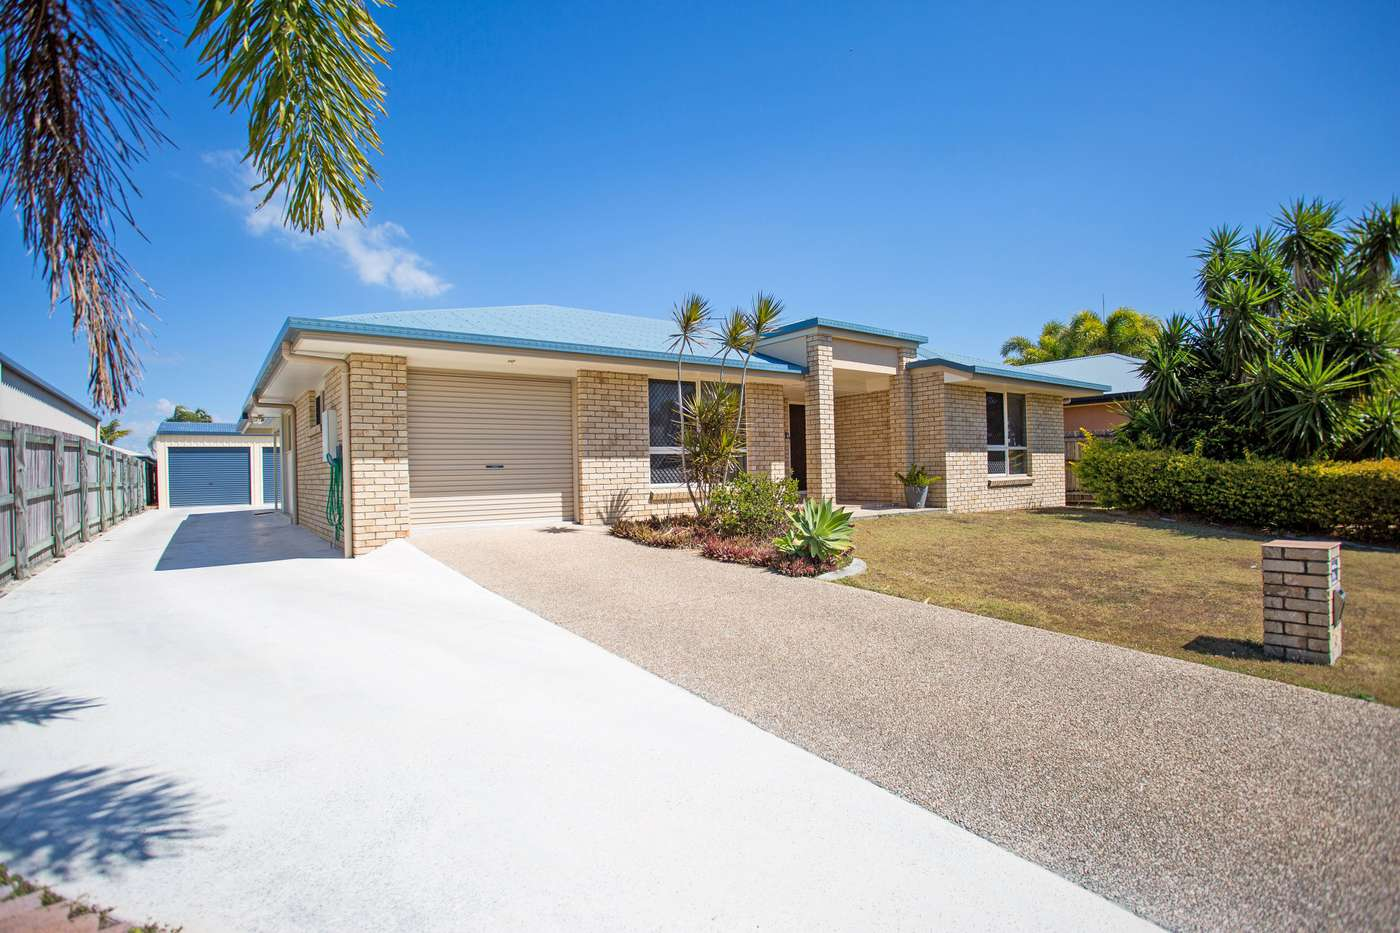 Main view of Homely house listing, 53 Hodges Street, East Mackay, QLD 4740